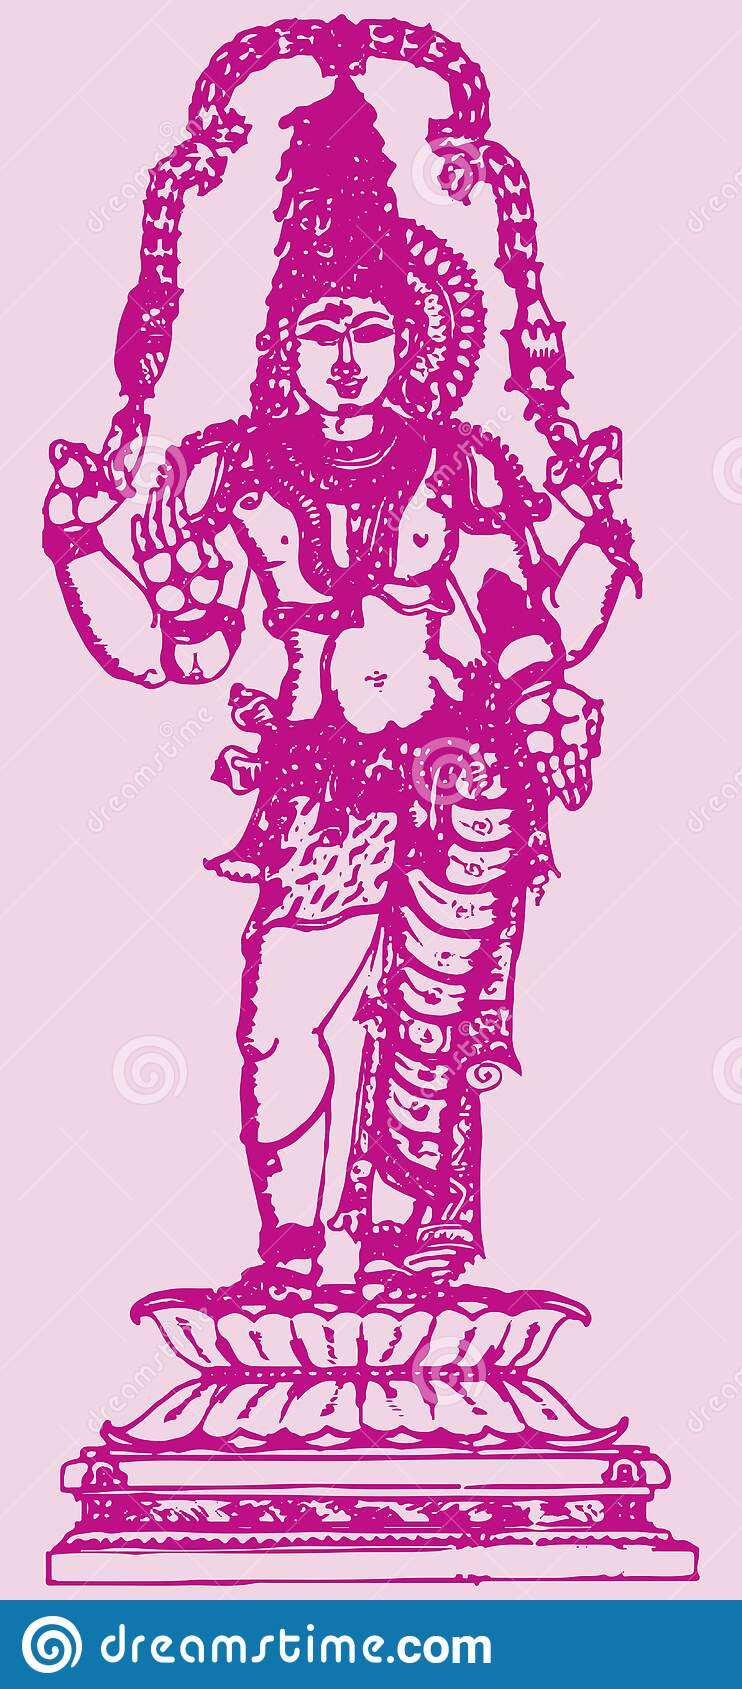 Drawing Of Standing Statue Of Lord Shiva And Parvati Concept Of